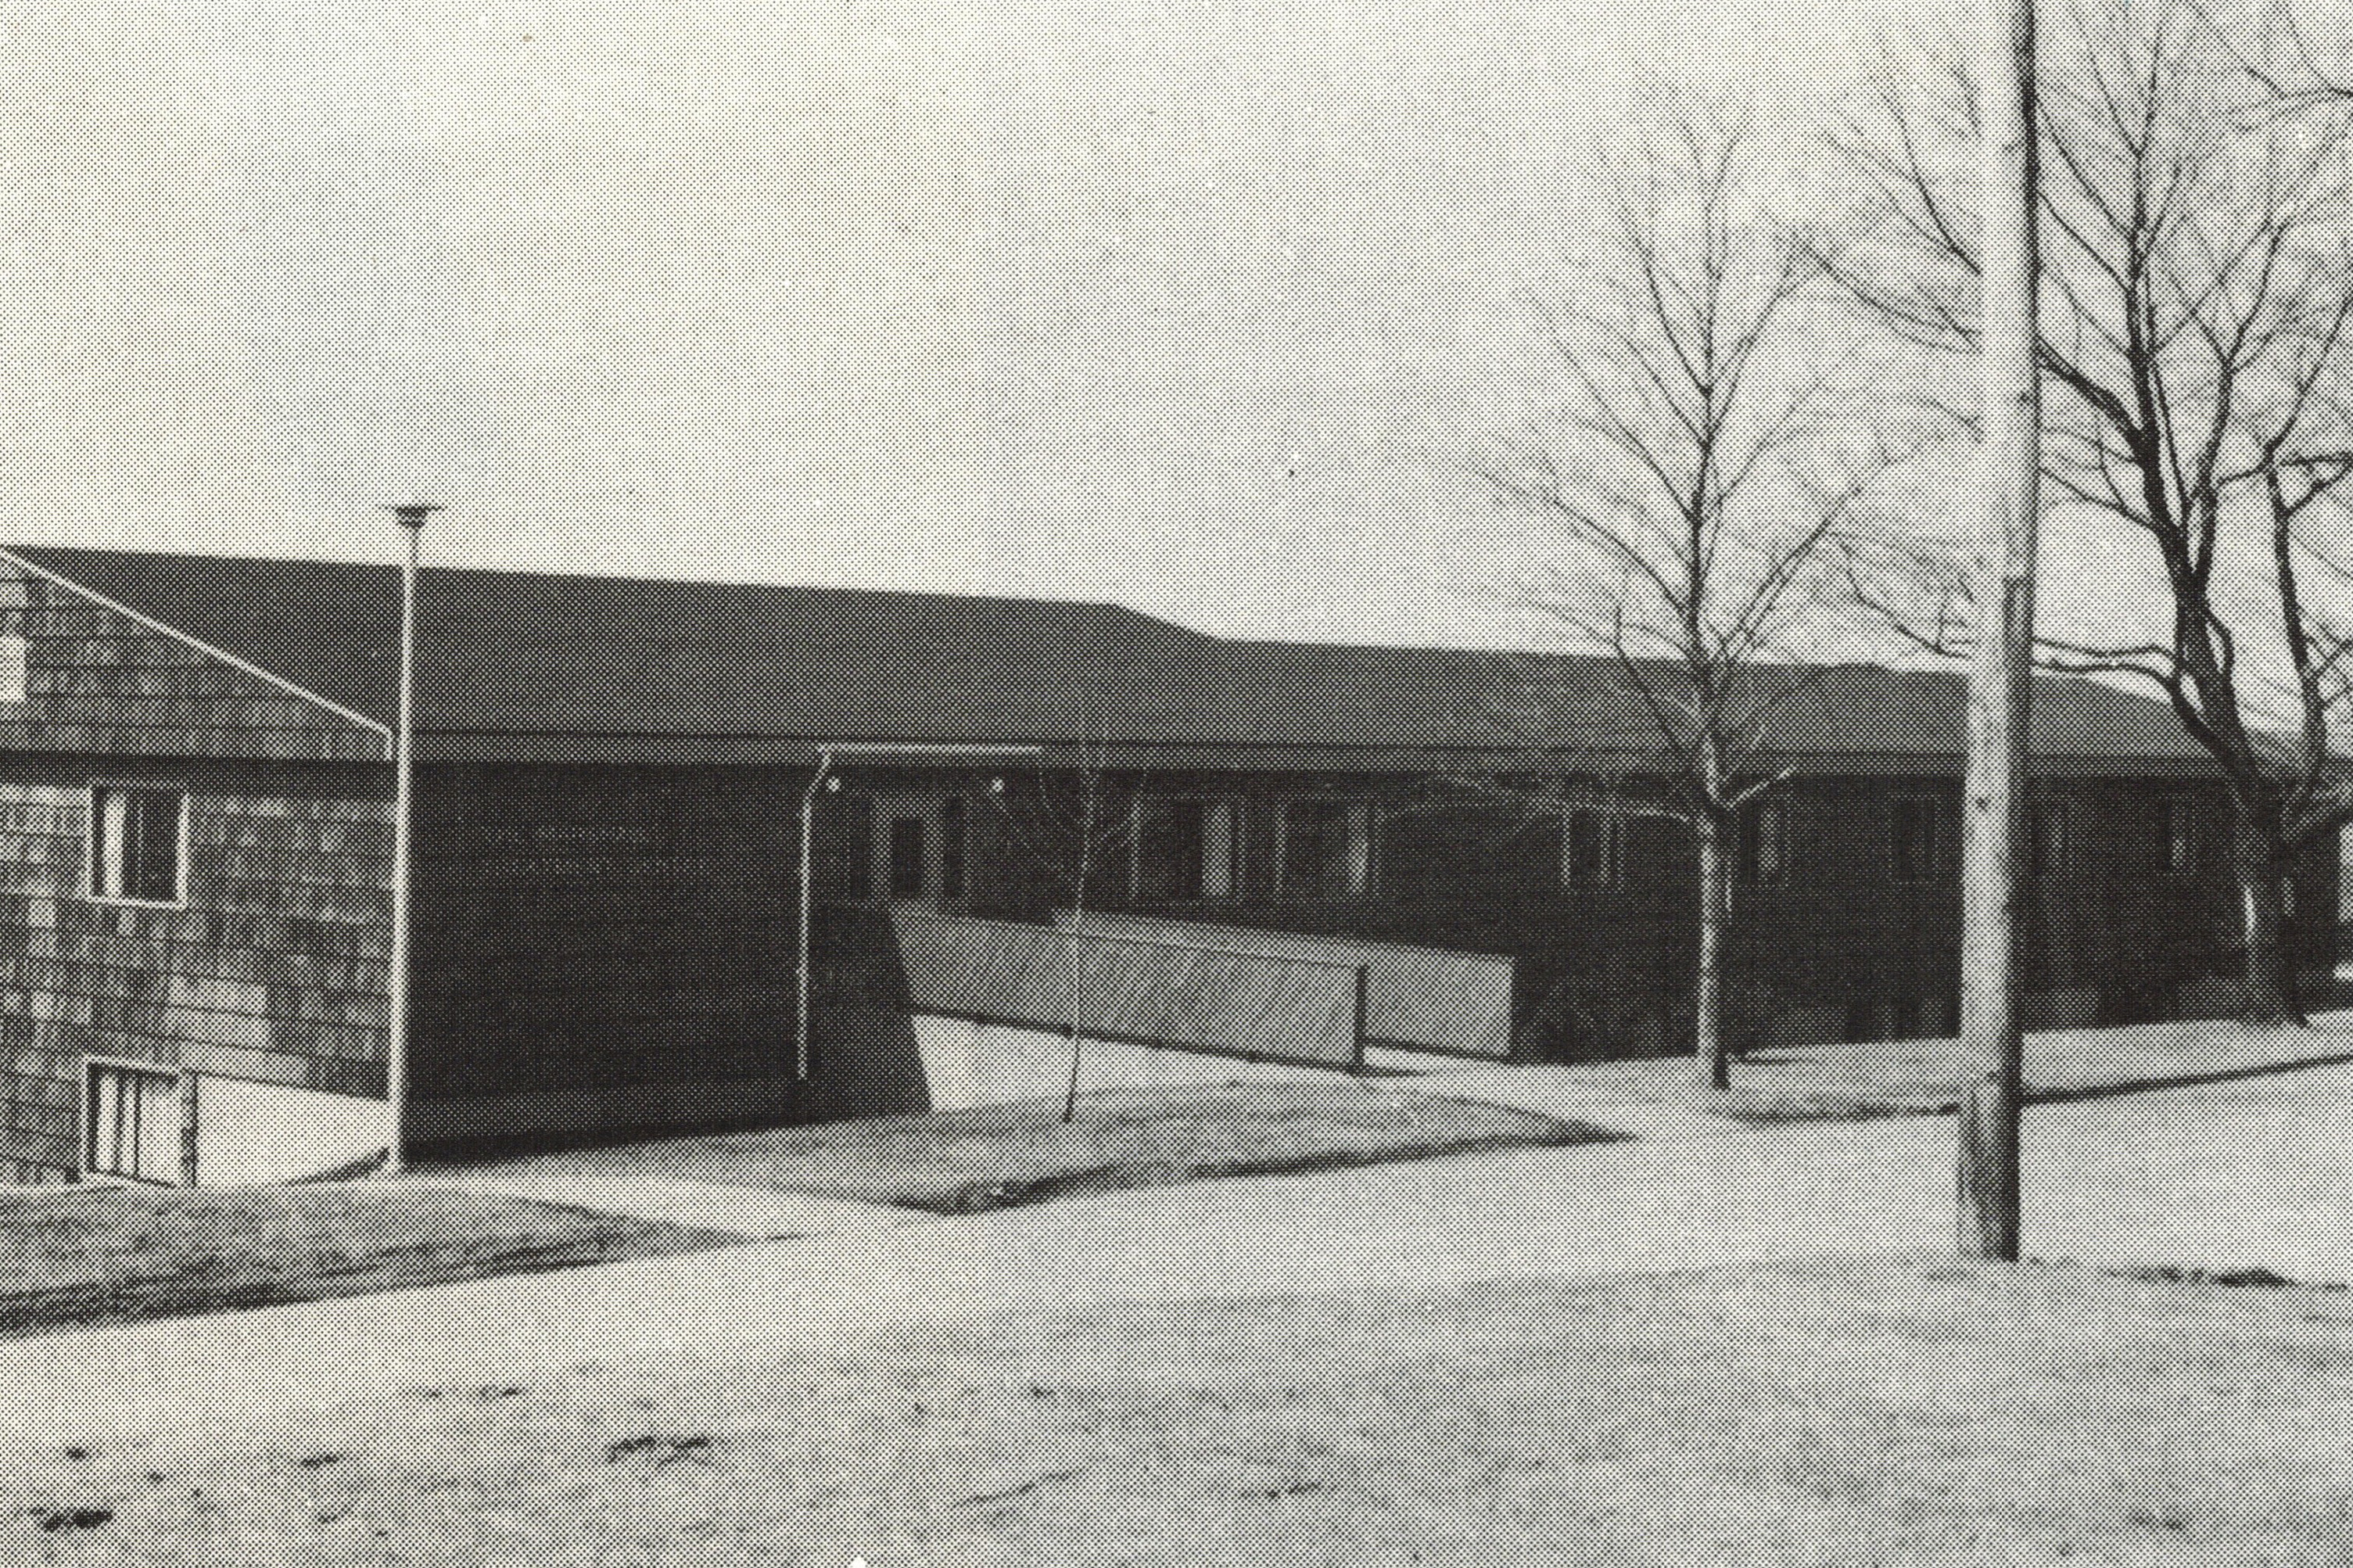 old black and white photo of low-rise wooden building